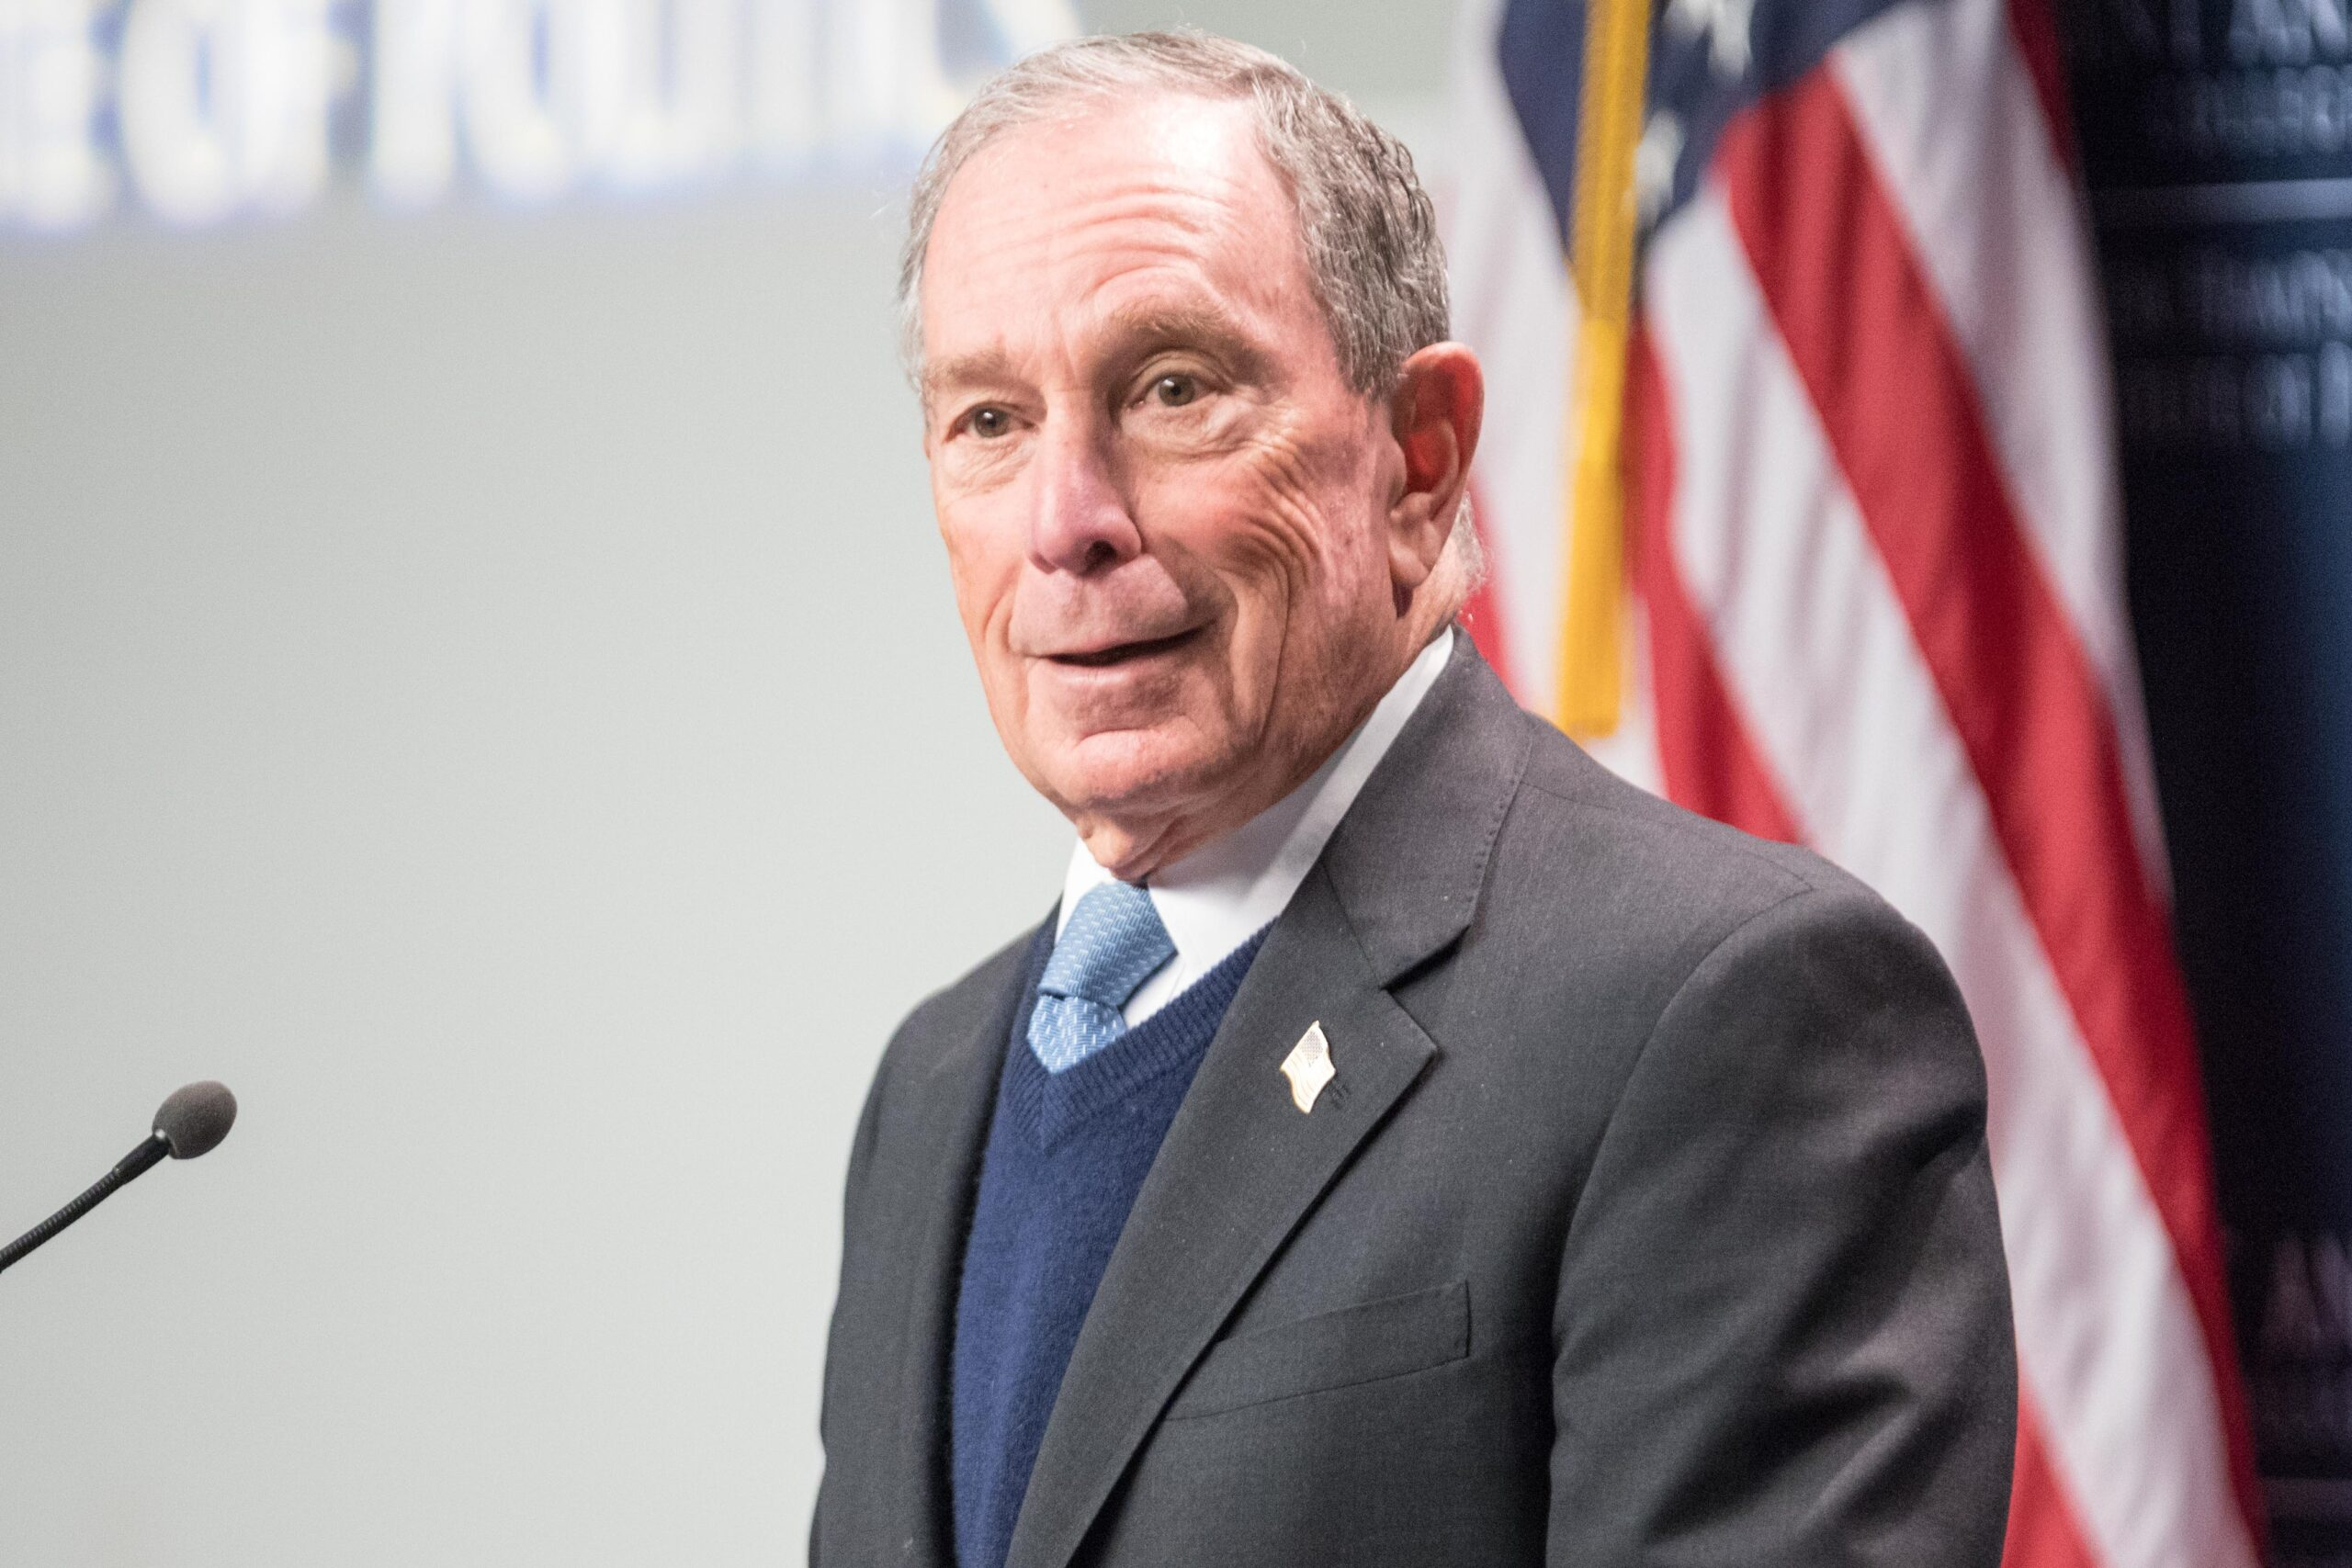 Rhode Island's Governor Endorses Michael Bloomberg for President